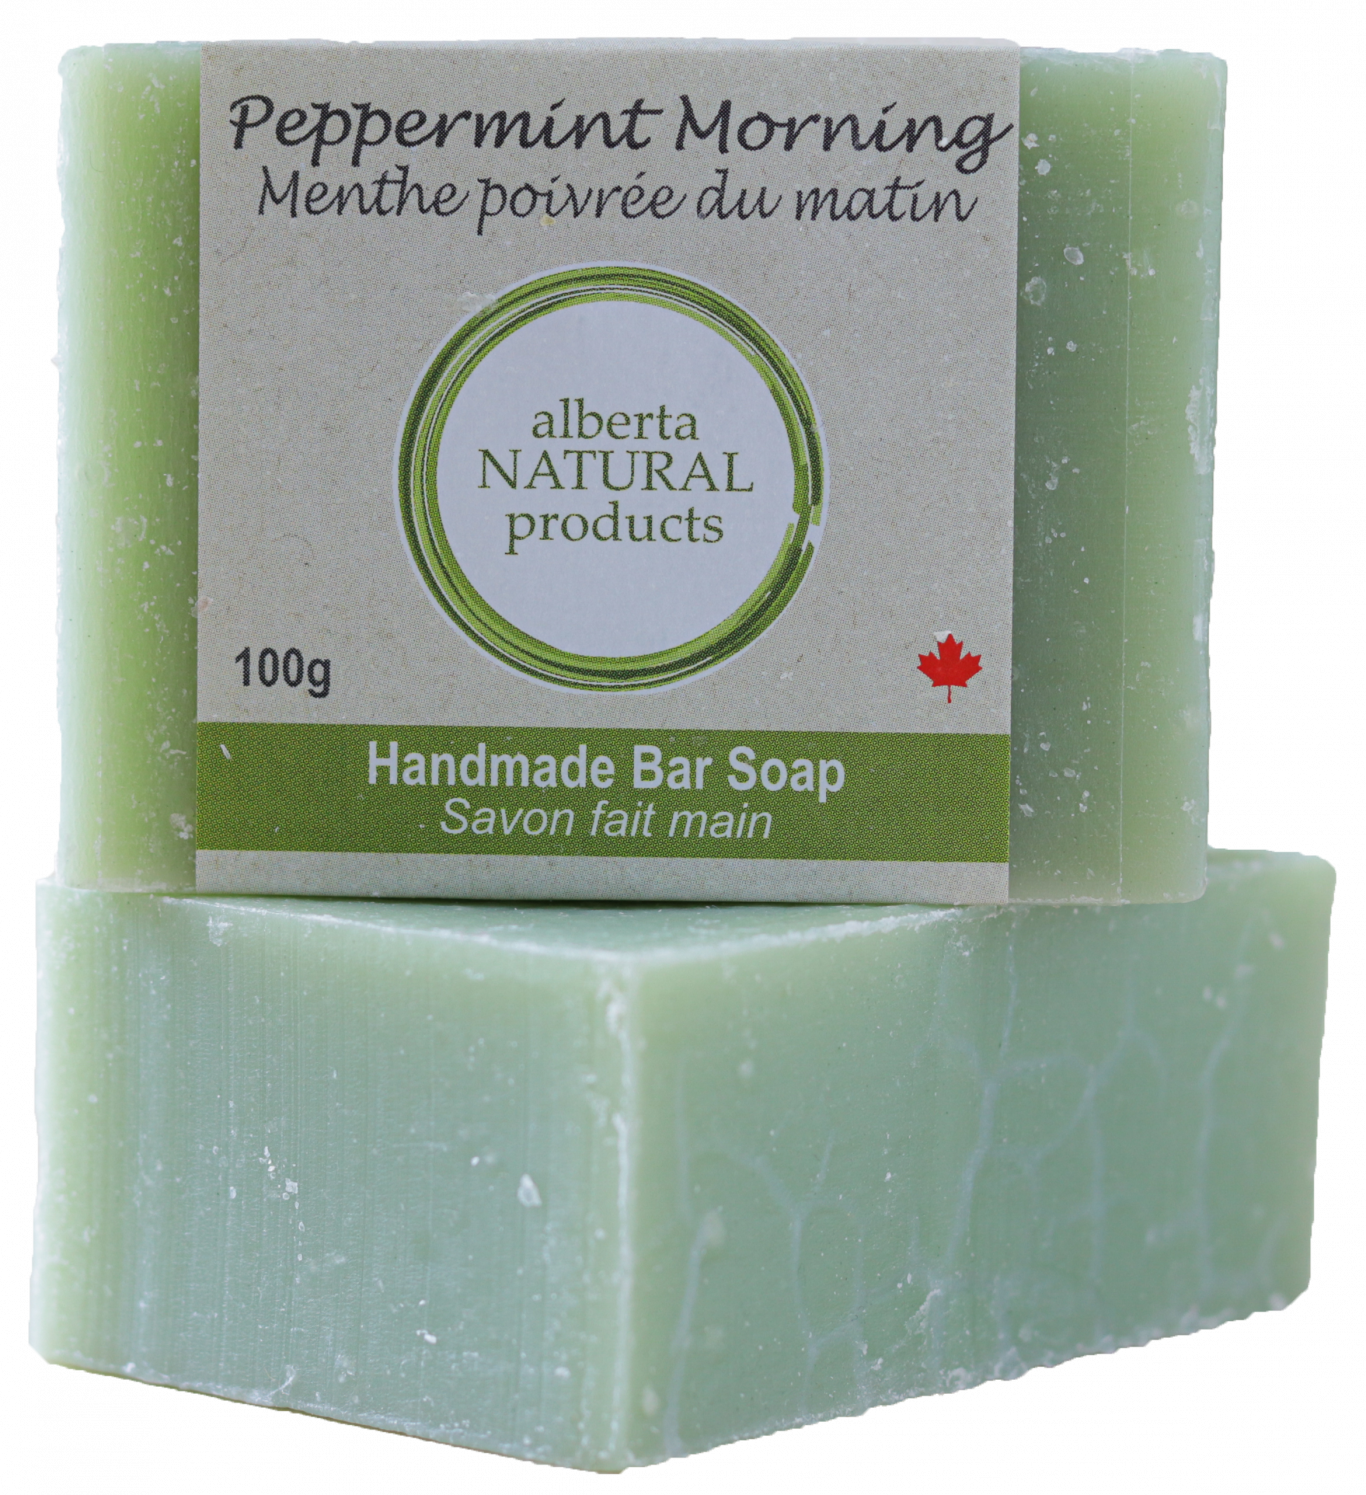 Peppermint Morning Duo_300 dpi